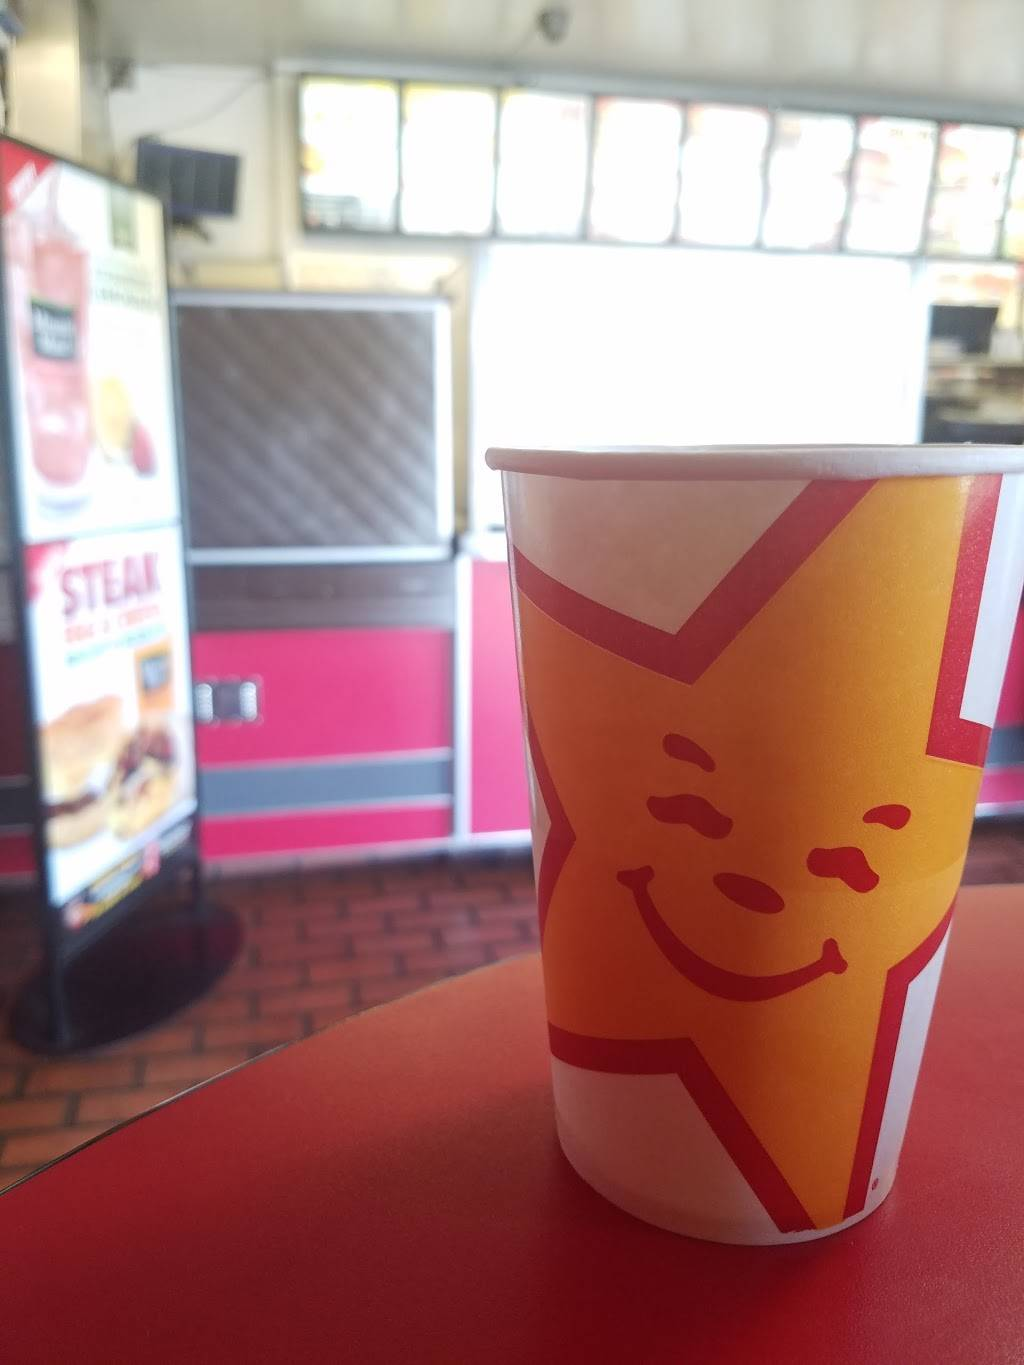 Carls Jr. | meal takeaway | 210 S Hacienda Blvd, City of Industry, CA 91745, USA | 6263307118 OR +1 626-330-7118